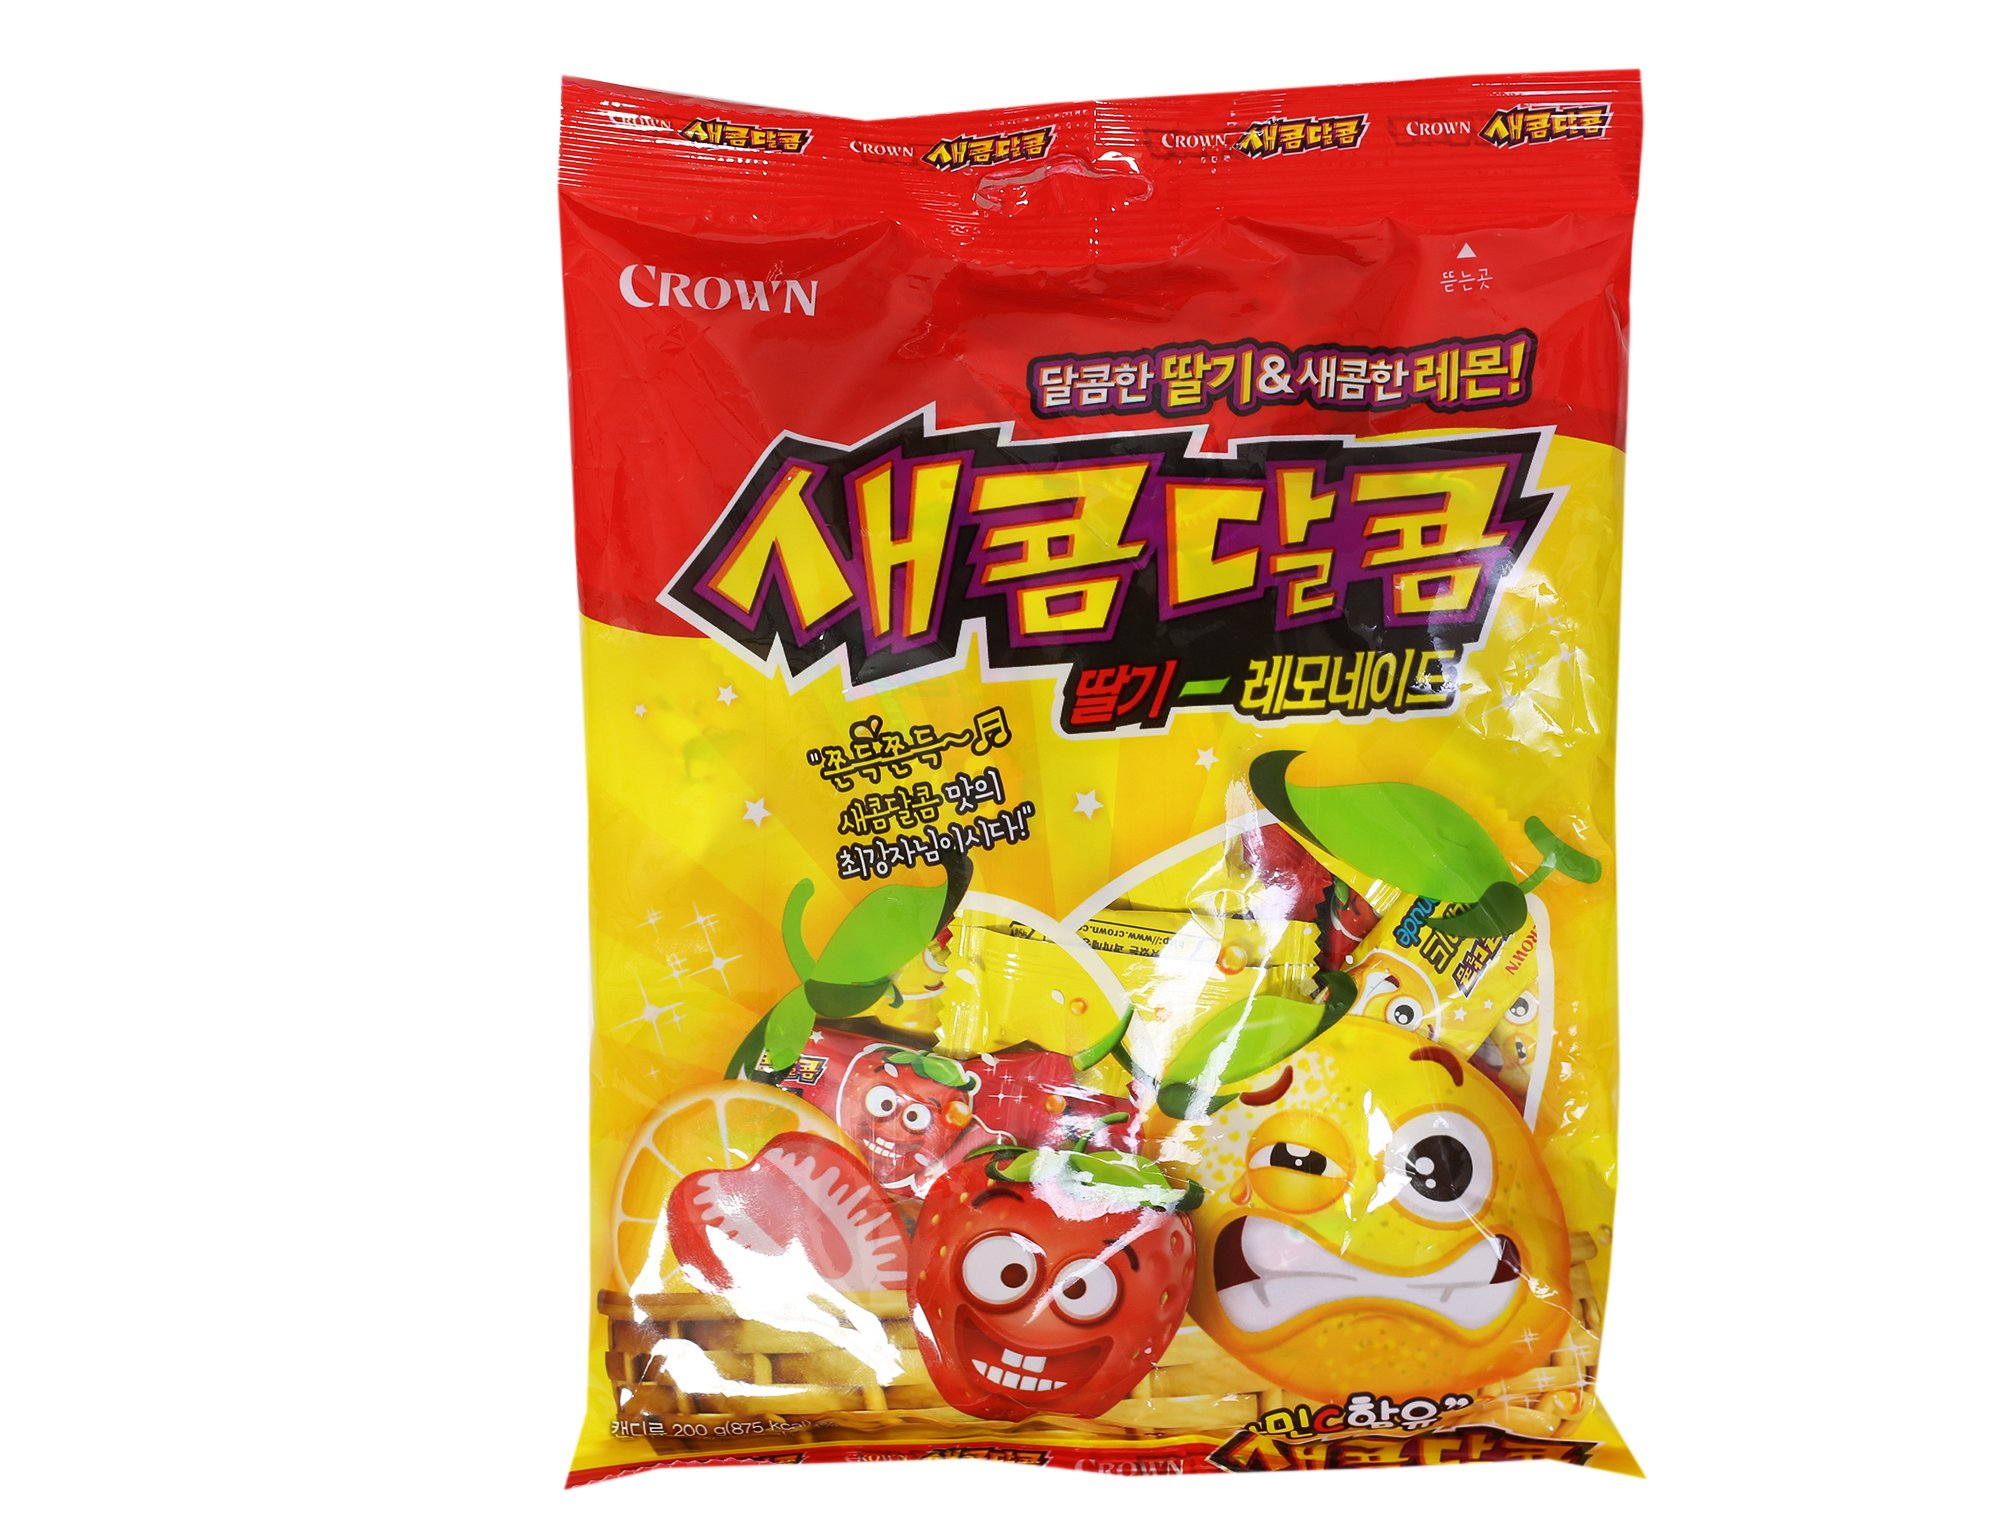 Korean Strawberry and Lemonade Flavored Chewy Sweet and Sour Candy 200g (1 Pack)